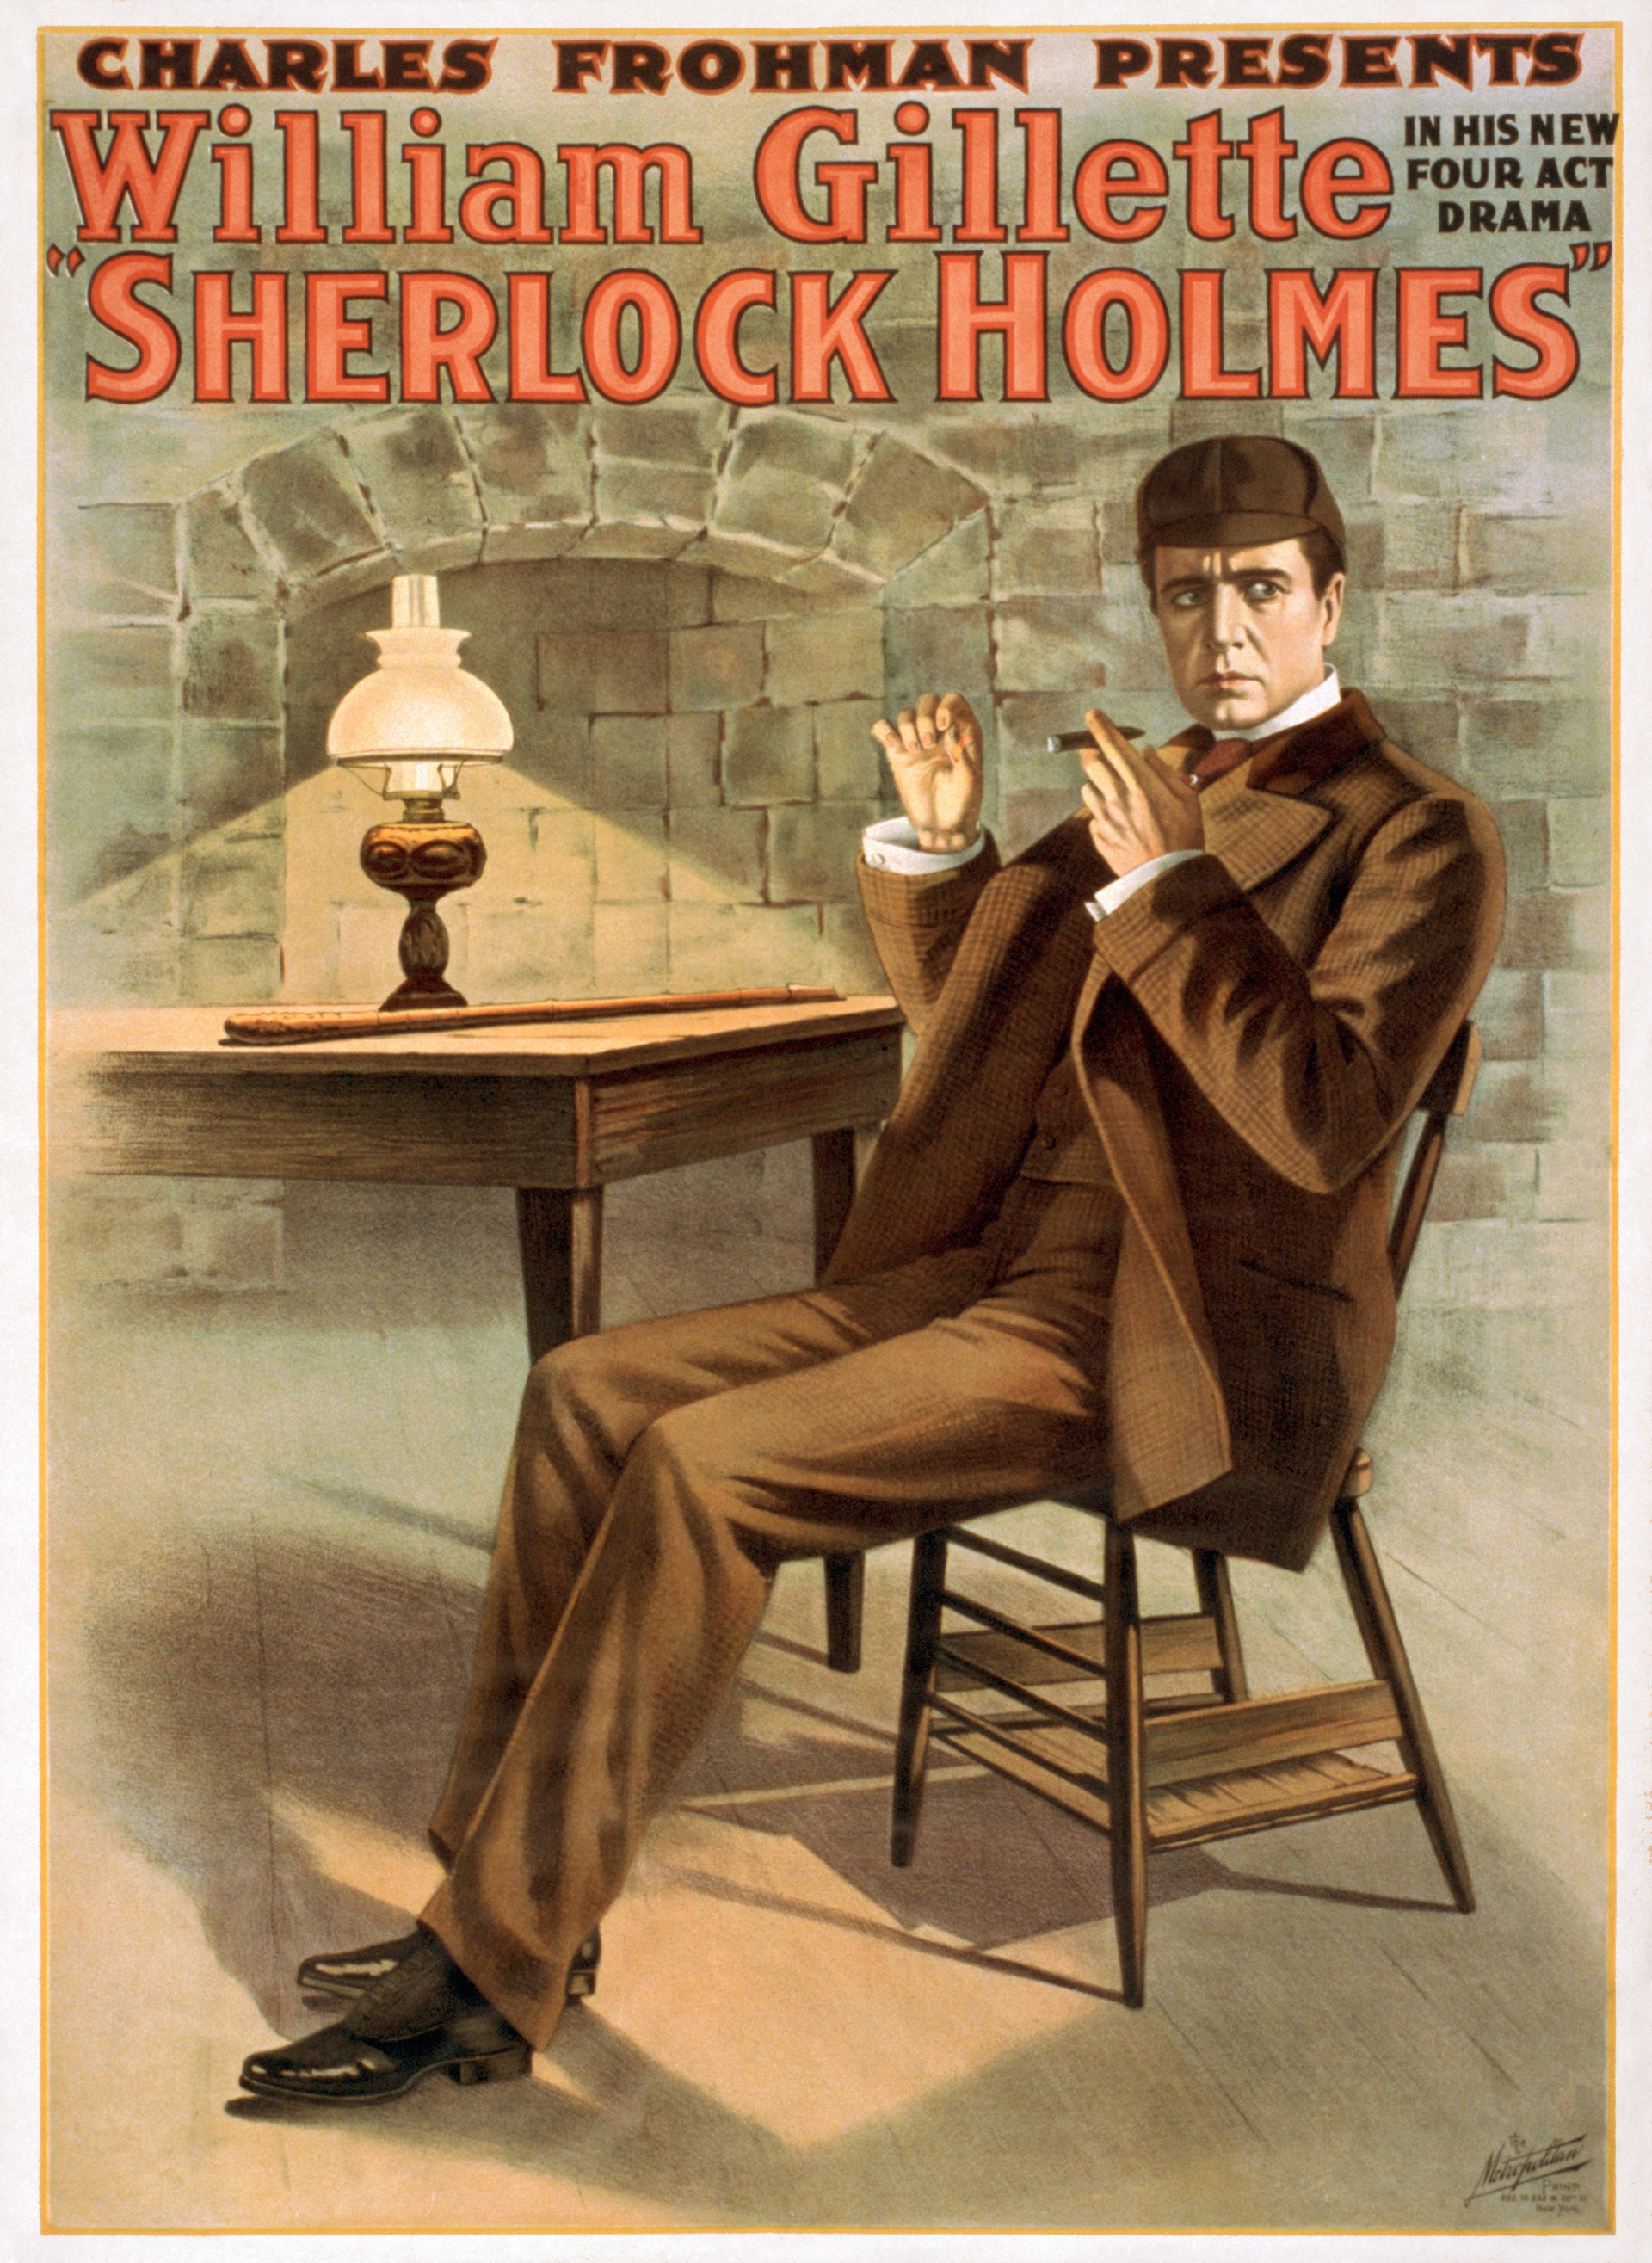 File:Charles Frohman Presents William Gillette In His New Four Act Drama,  Sherlock Holmes